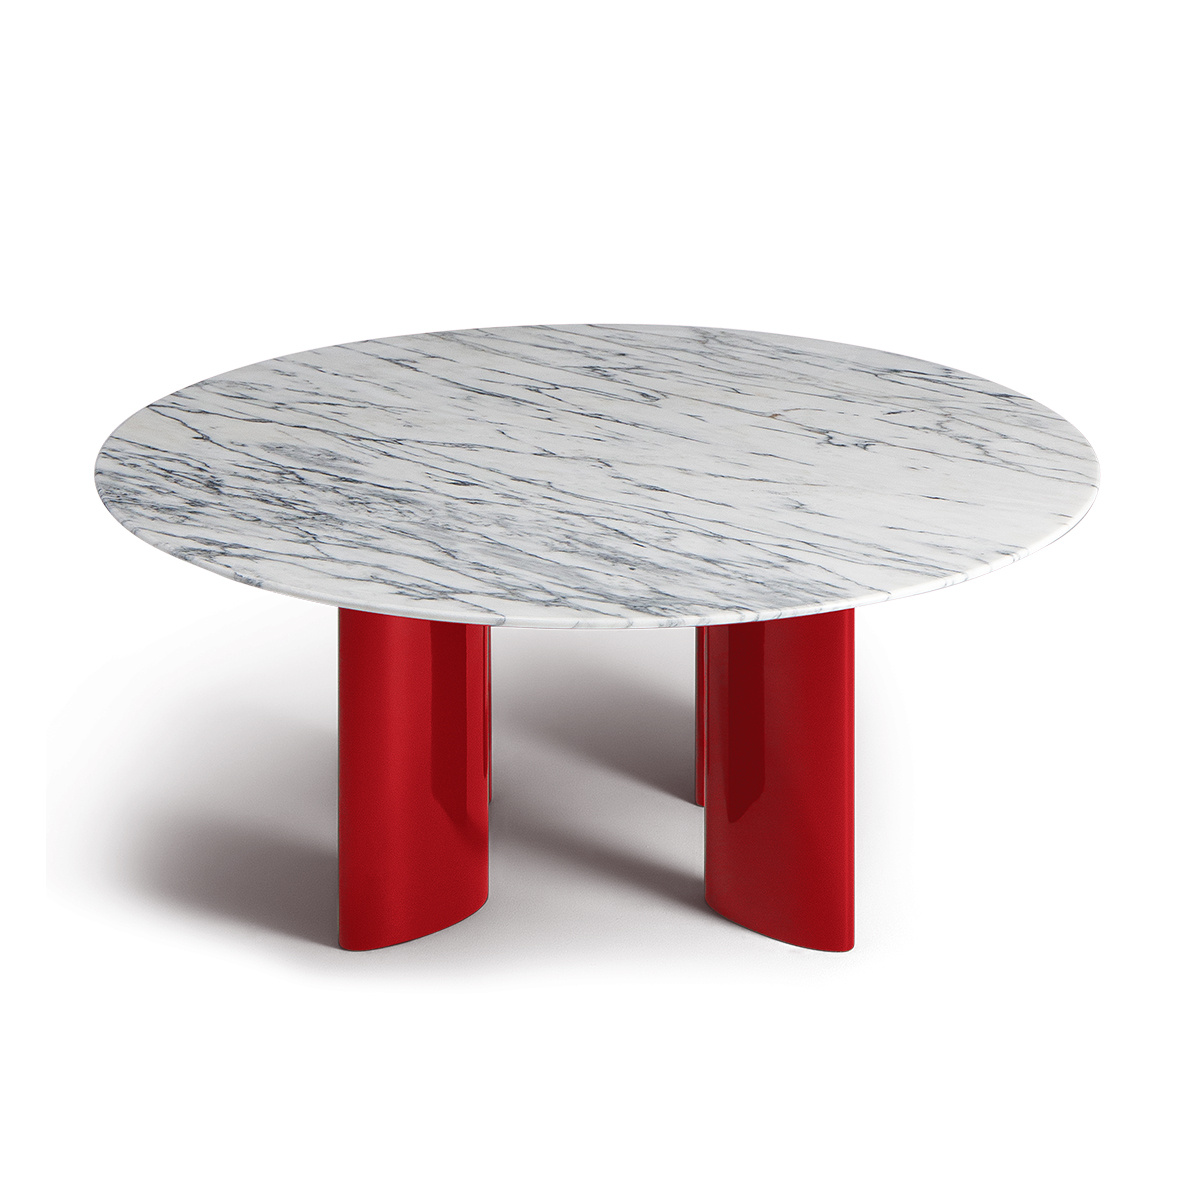 - Carlotta-coffee-table-white-marble-top-and-red-legs (1) - Journelles